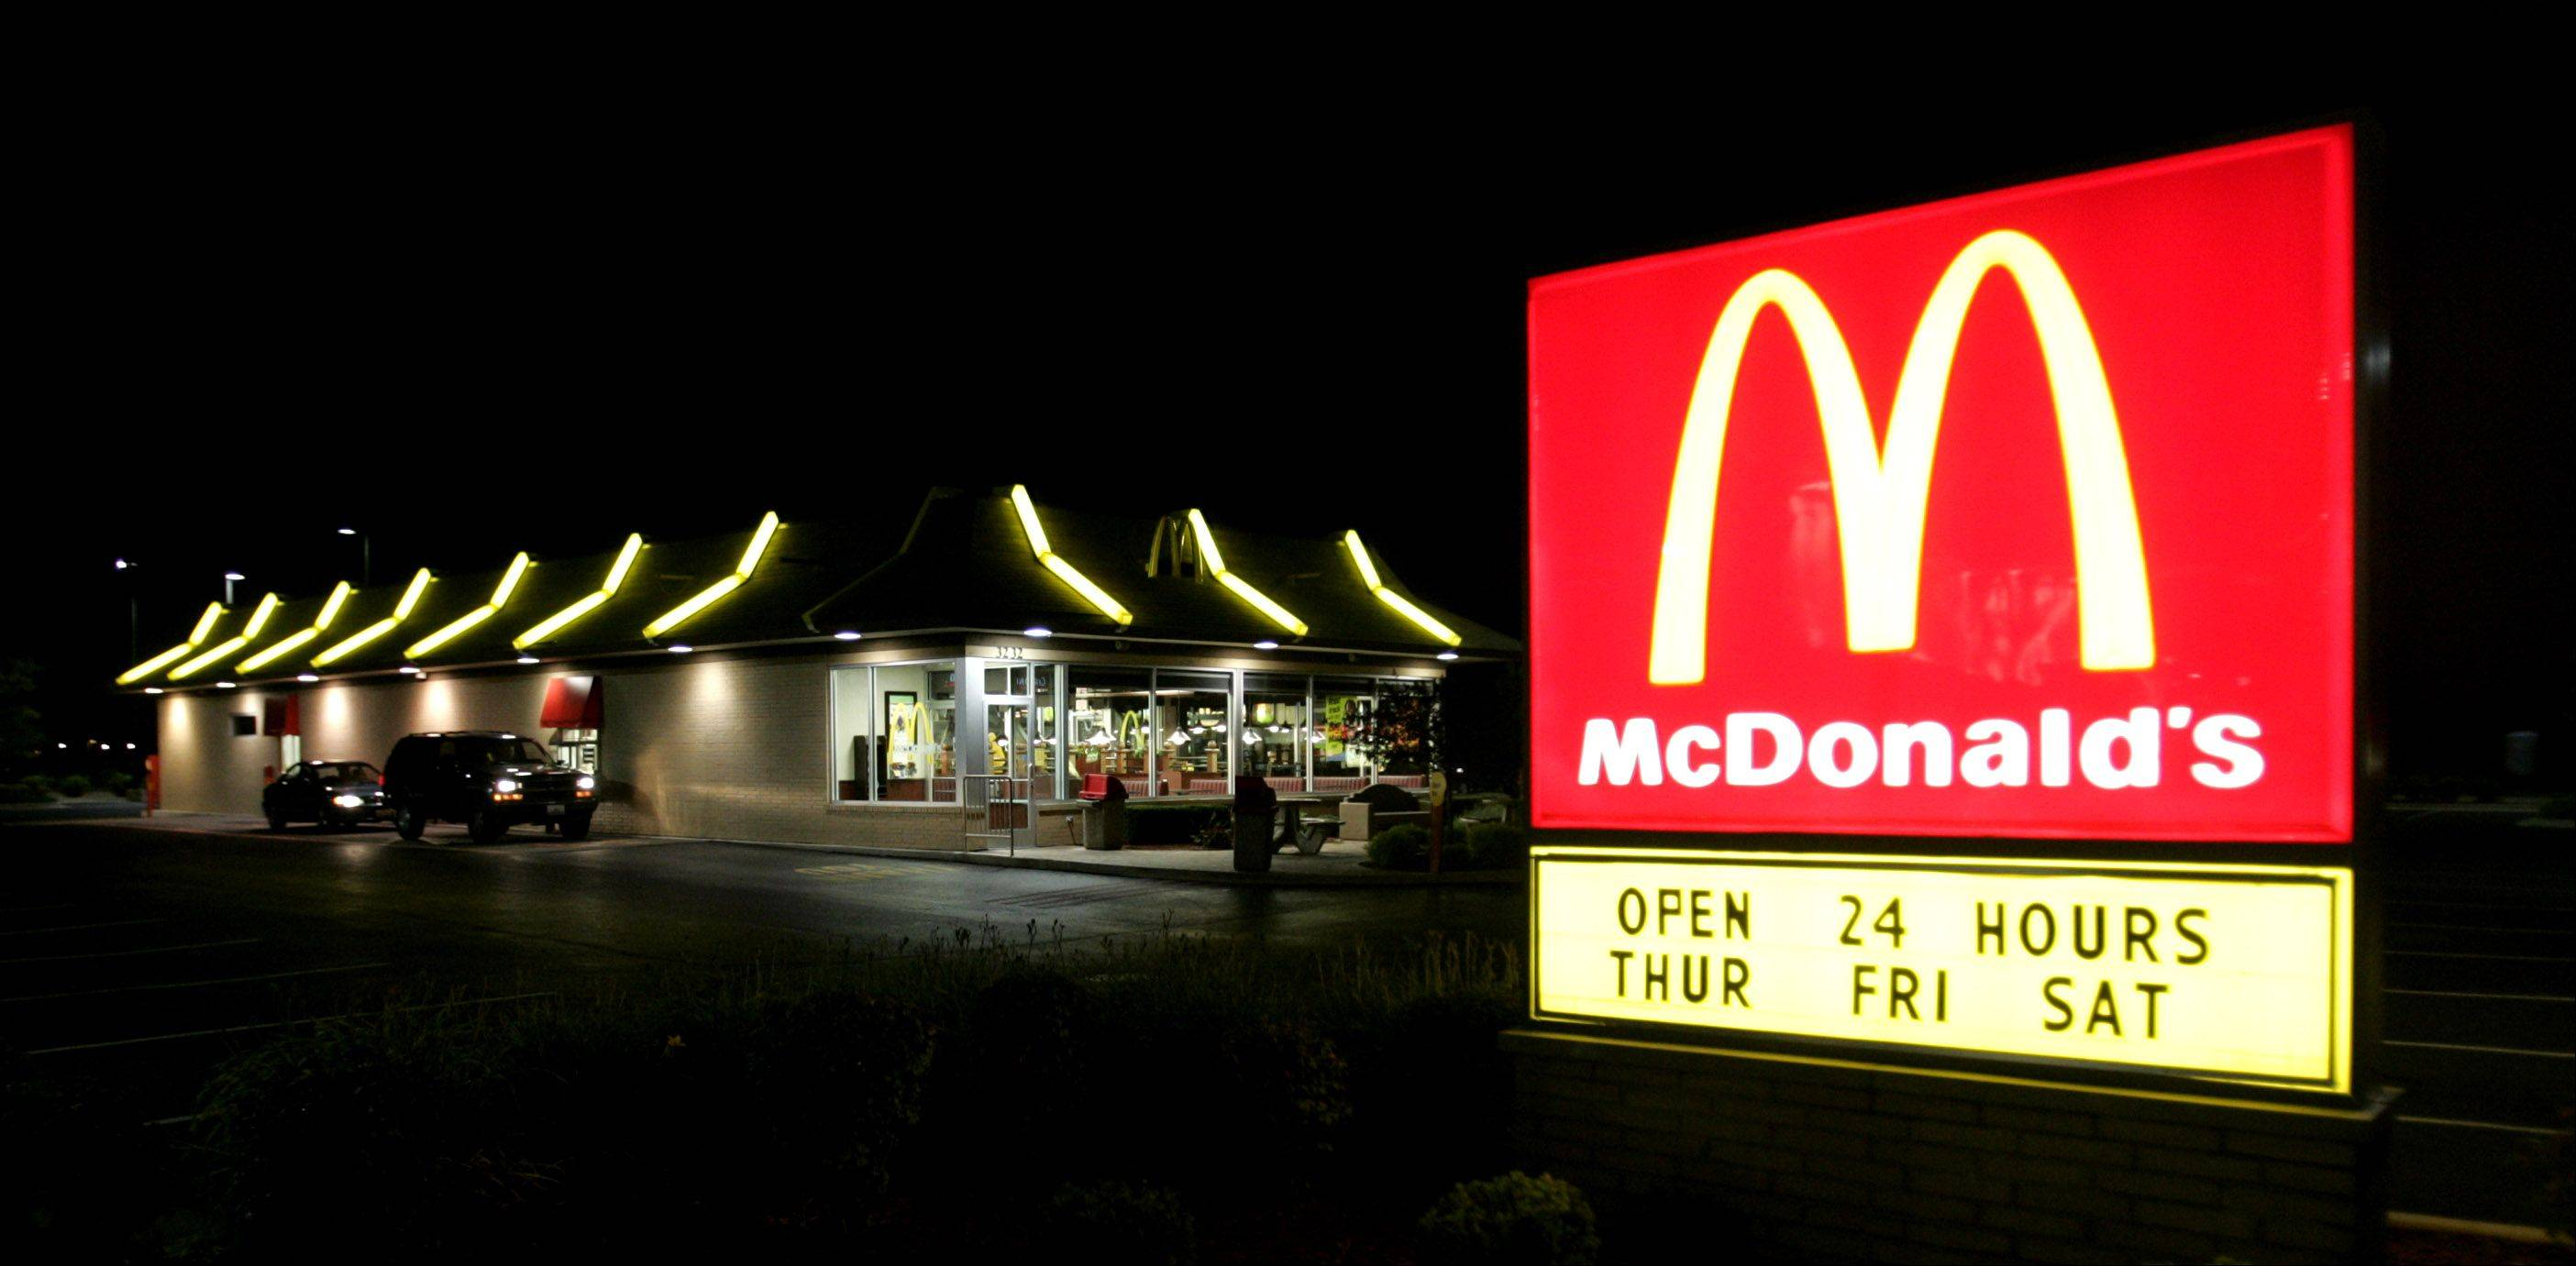 Oak Brook-based McDonald's is raising its quarterly cash dividend by 5 percent, bringing its fourth-quarter payout to more than $800 million.